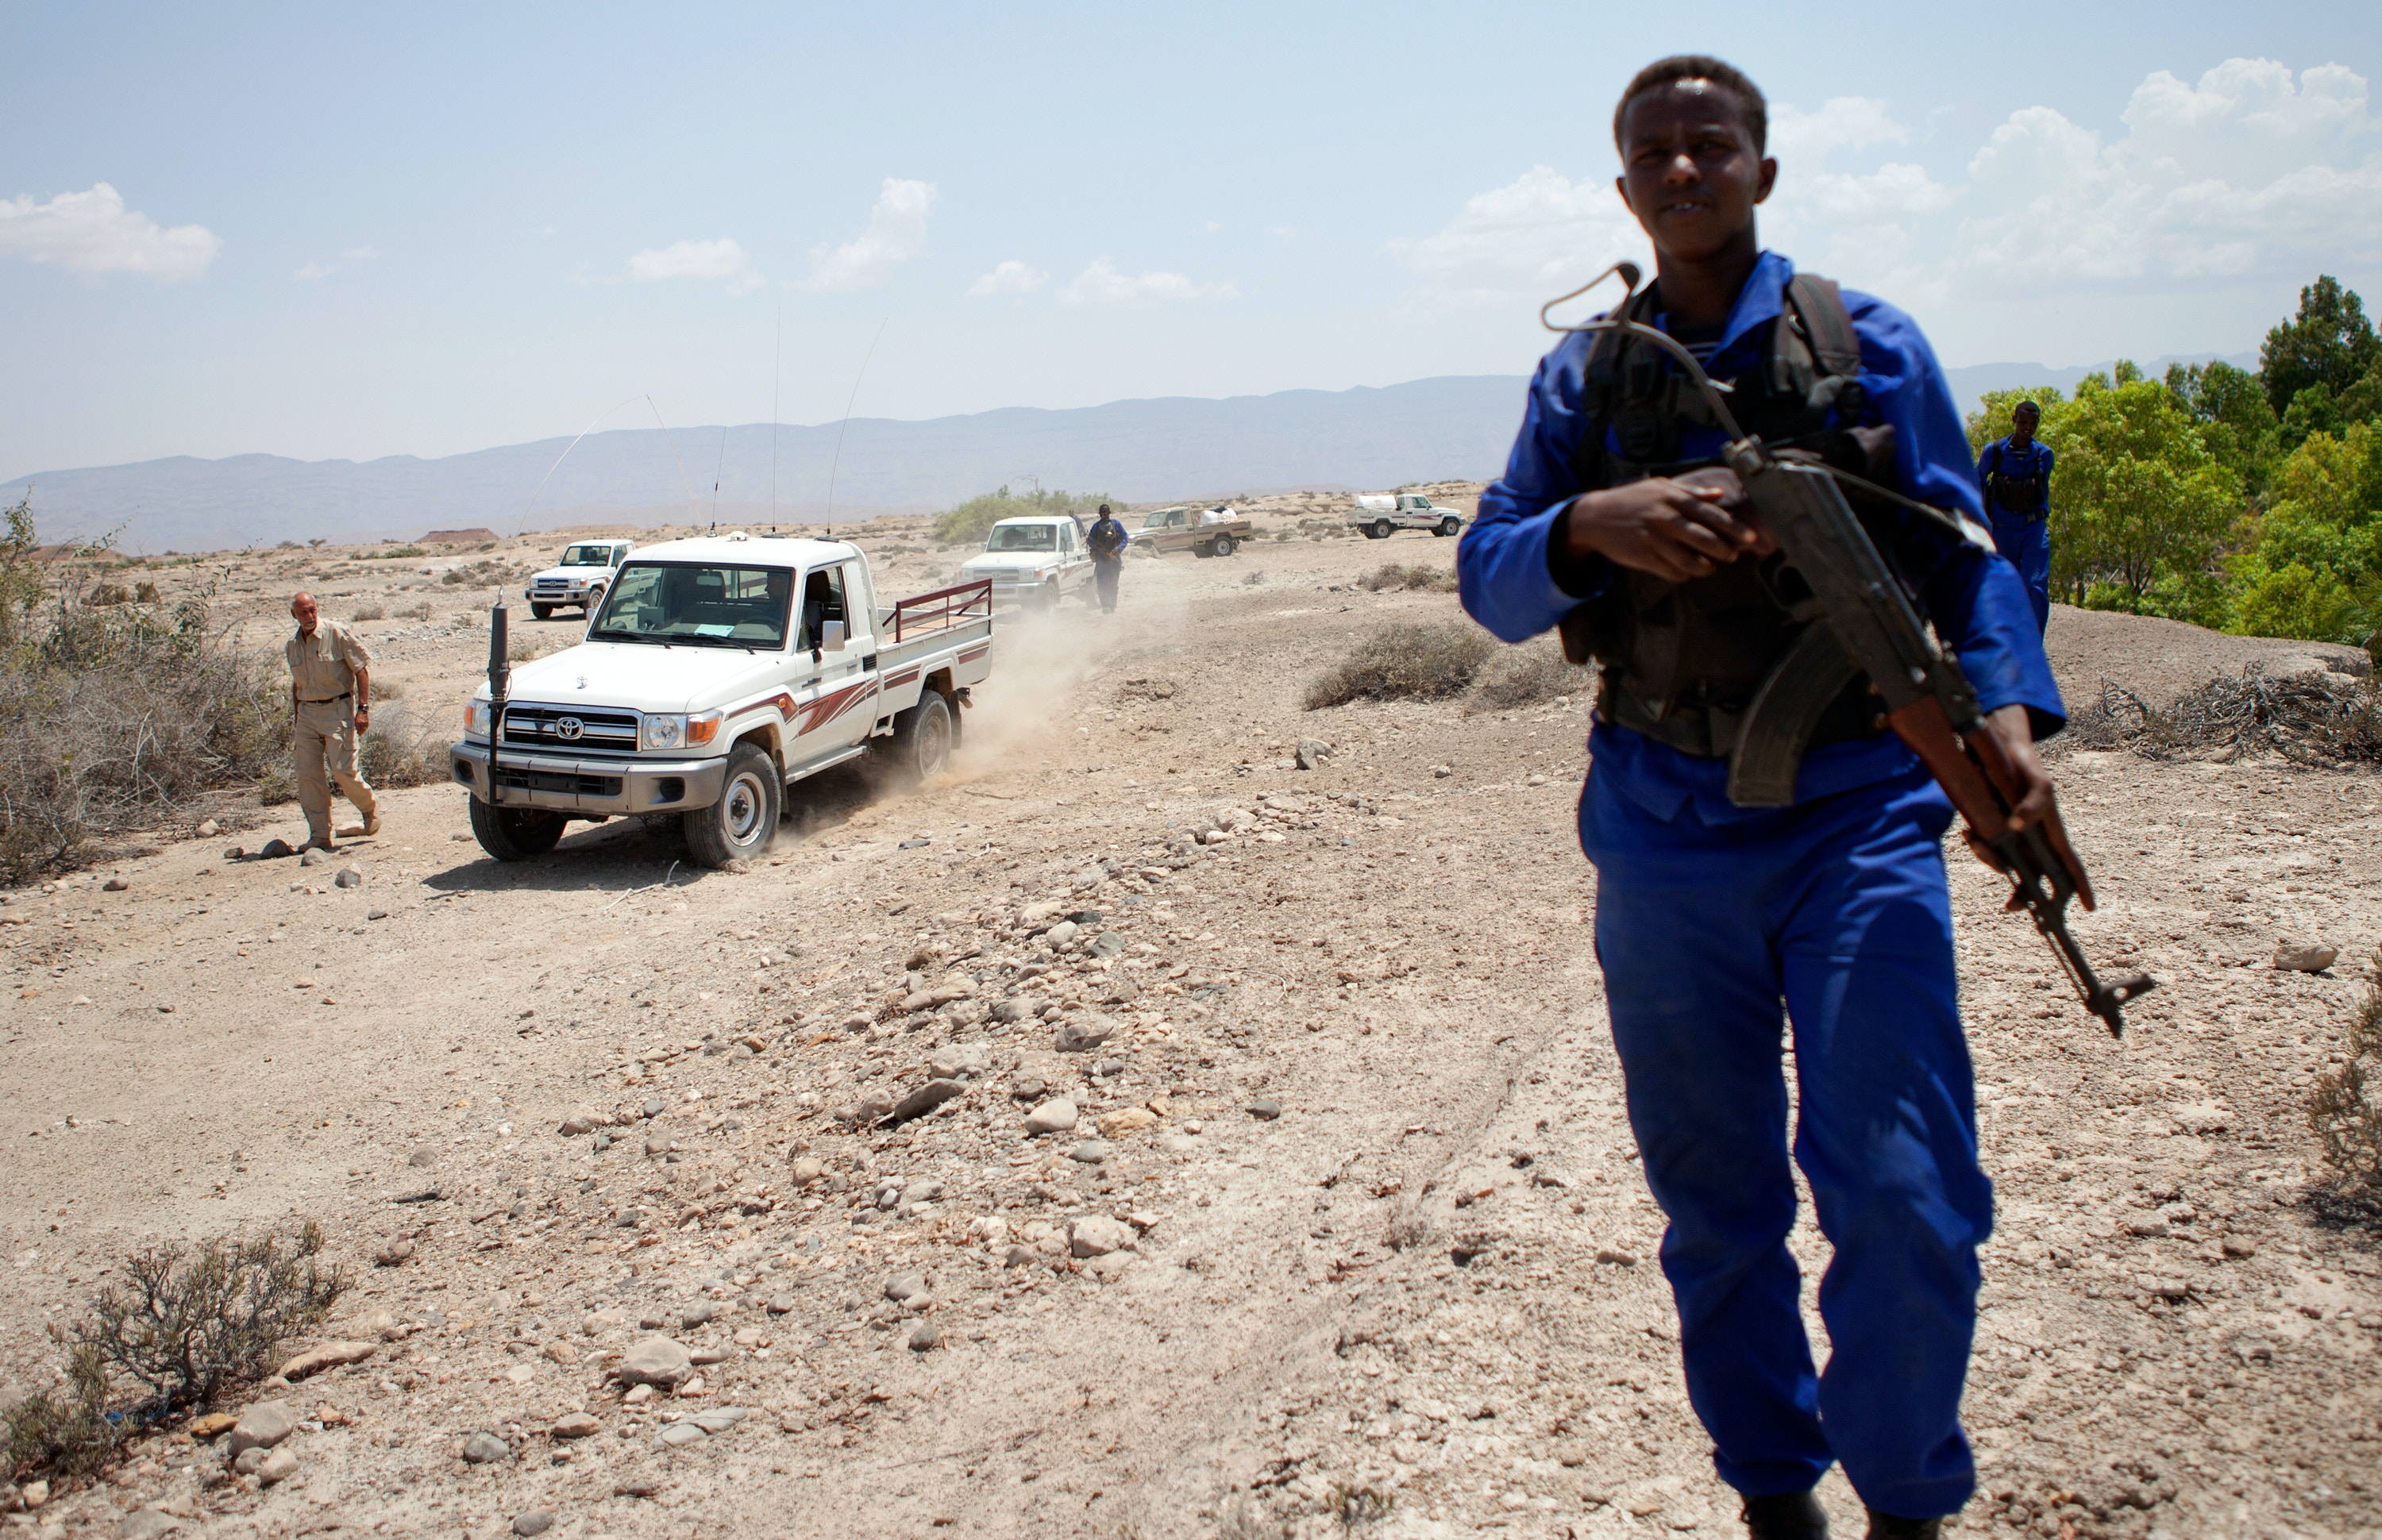 Members of the Puntland Maritime Police Force on patrol for pirates near the village of Elayo, Somalia. The Puntland Maritime Police Force is a locally recruited, professional maritime security force. It is primarily aimed at preventing, detecting and eradicating piracy, illegal fishing, and other illicit activity off of the coast of Somalia, in addition to generally safeguarding the nation's marine resources.In addition, the Force provides logistics support to humanitarian efforts. (Photo by jason florio/Corbis via Getty Images)